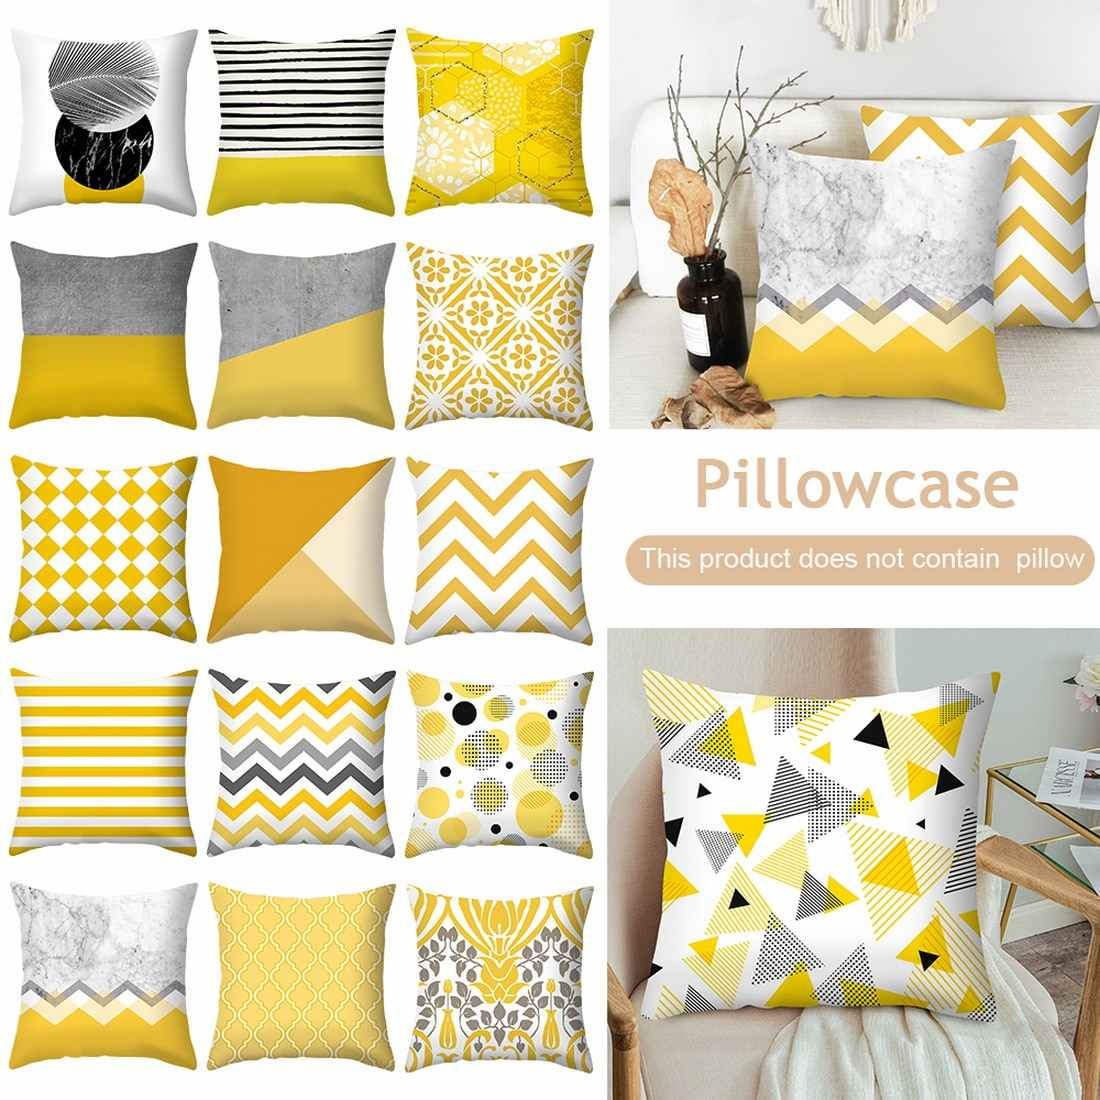 Yellow Geometric Printed Throw Pillow Case Sofa Car Waist Cushion Cover Office Kussenhoes Housse De Coussin Pillowcase 45x45cm Cushion Cover Aliexpress